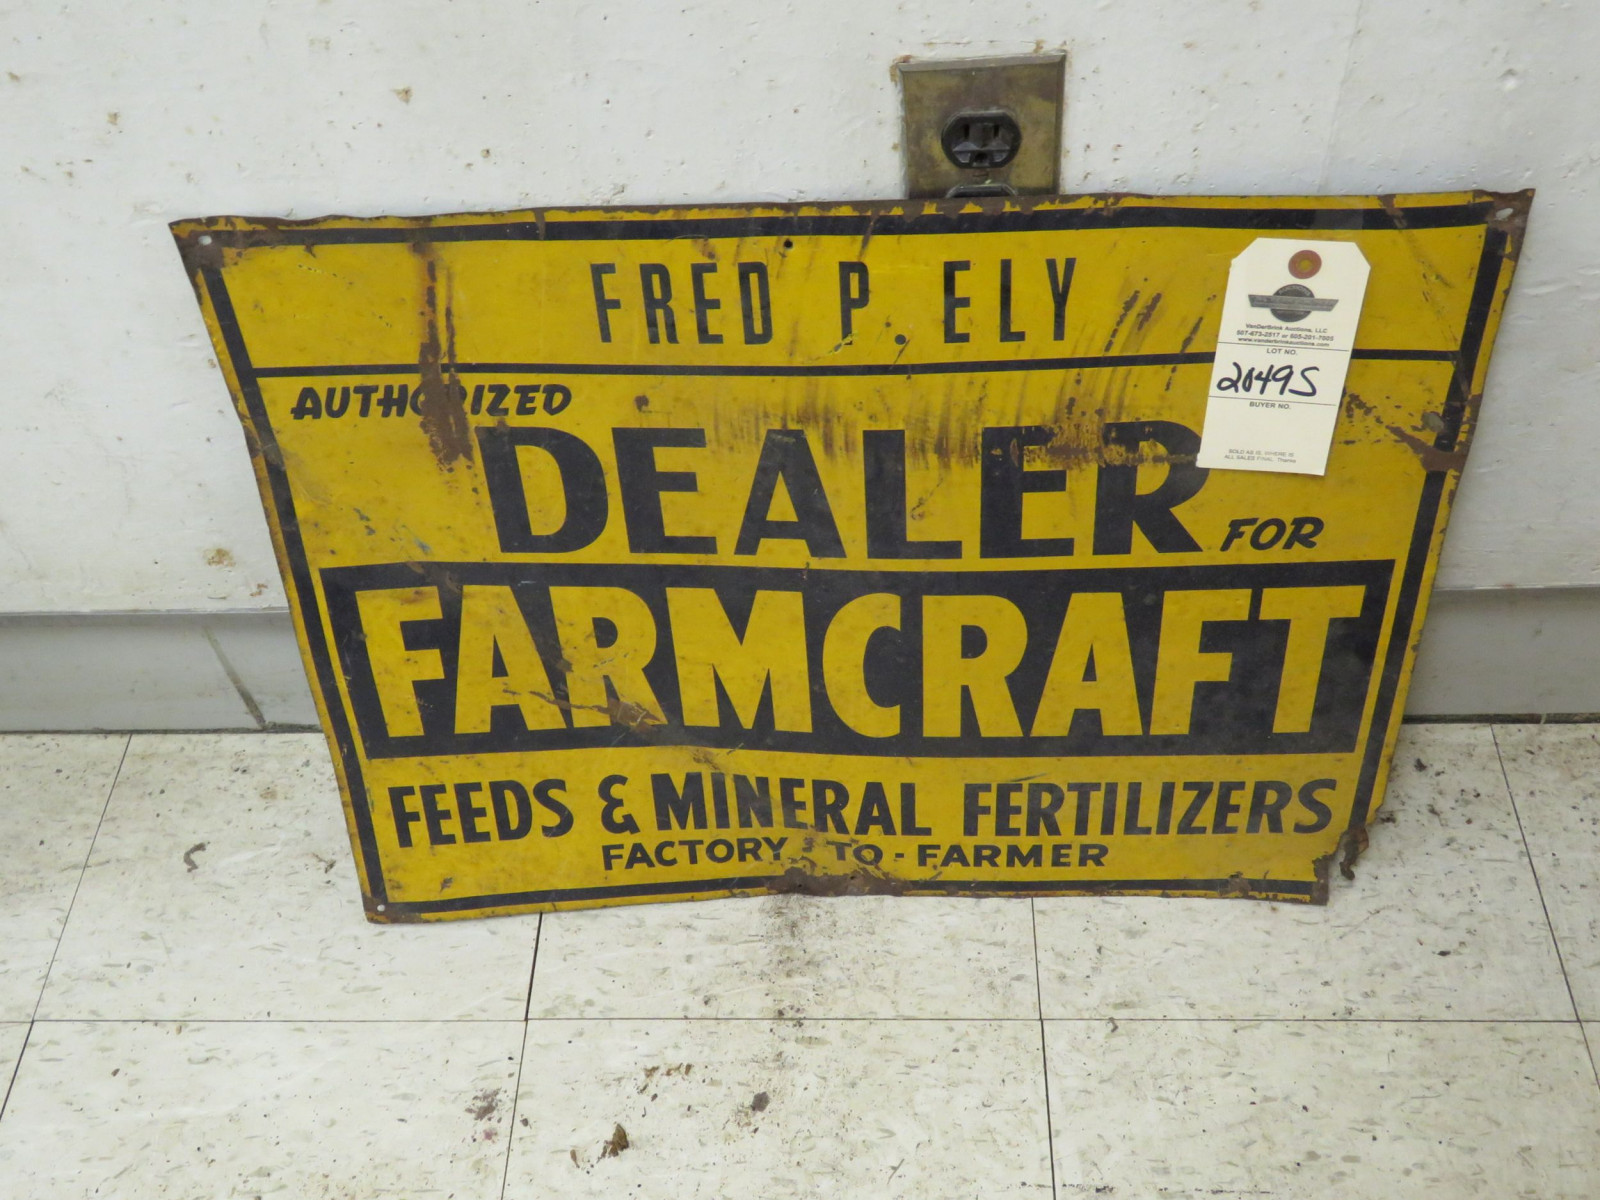 Farm Craft Dealer Sign - Image 1